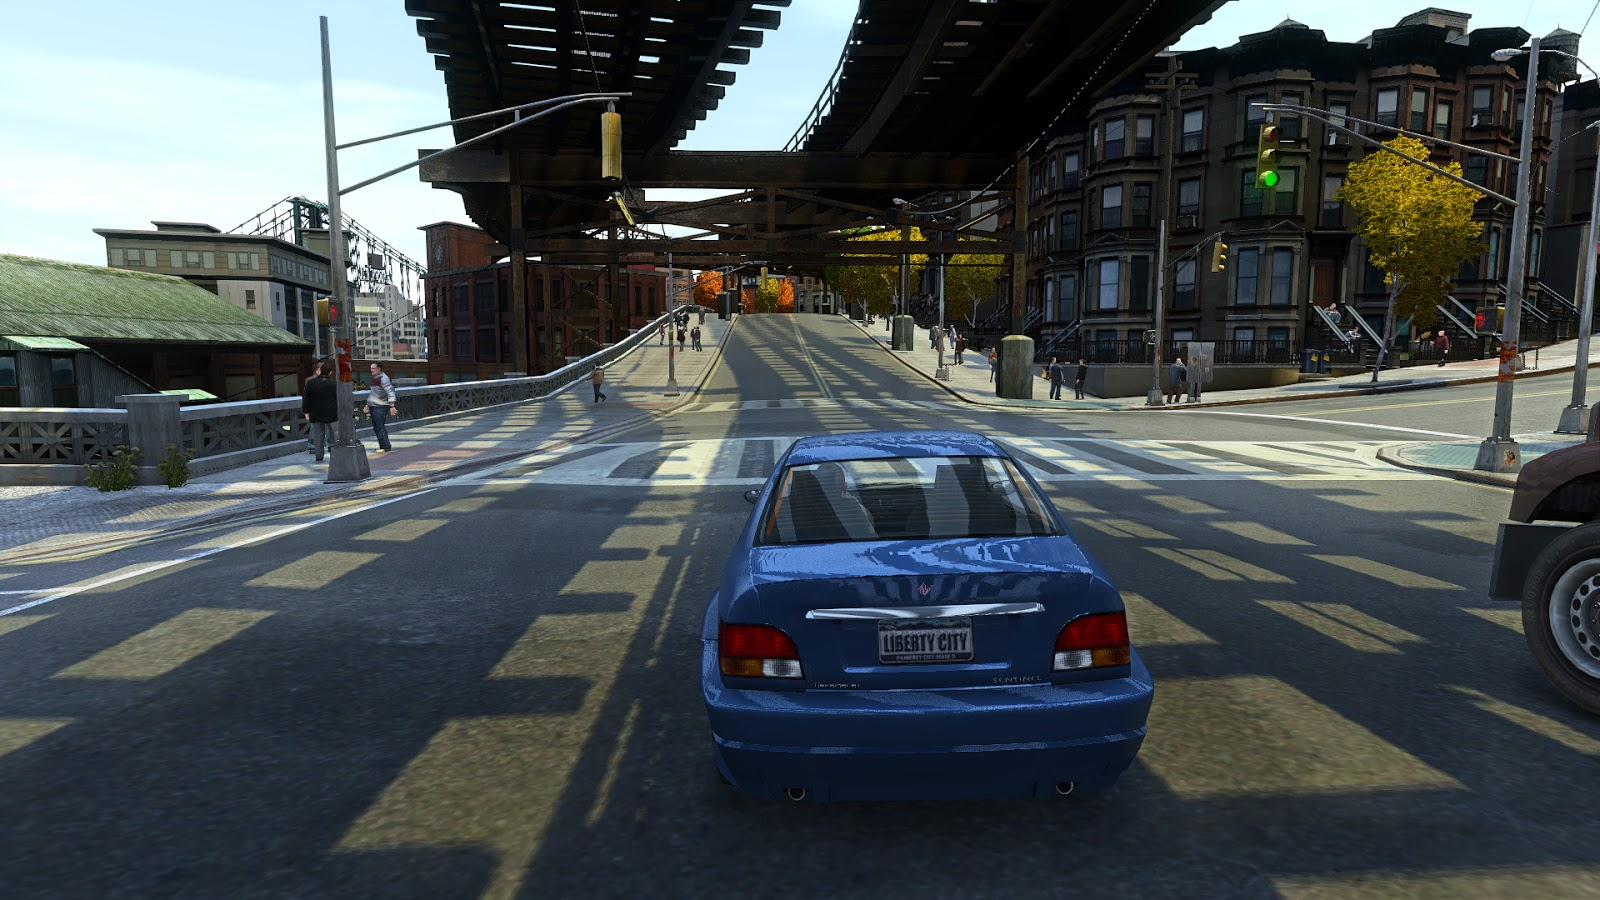 Gta San Andreas Gta 4 Low End PC Graphics Mod setup